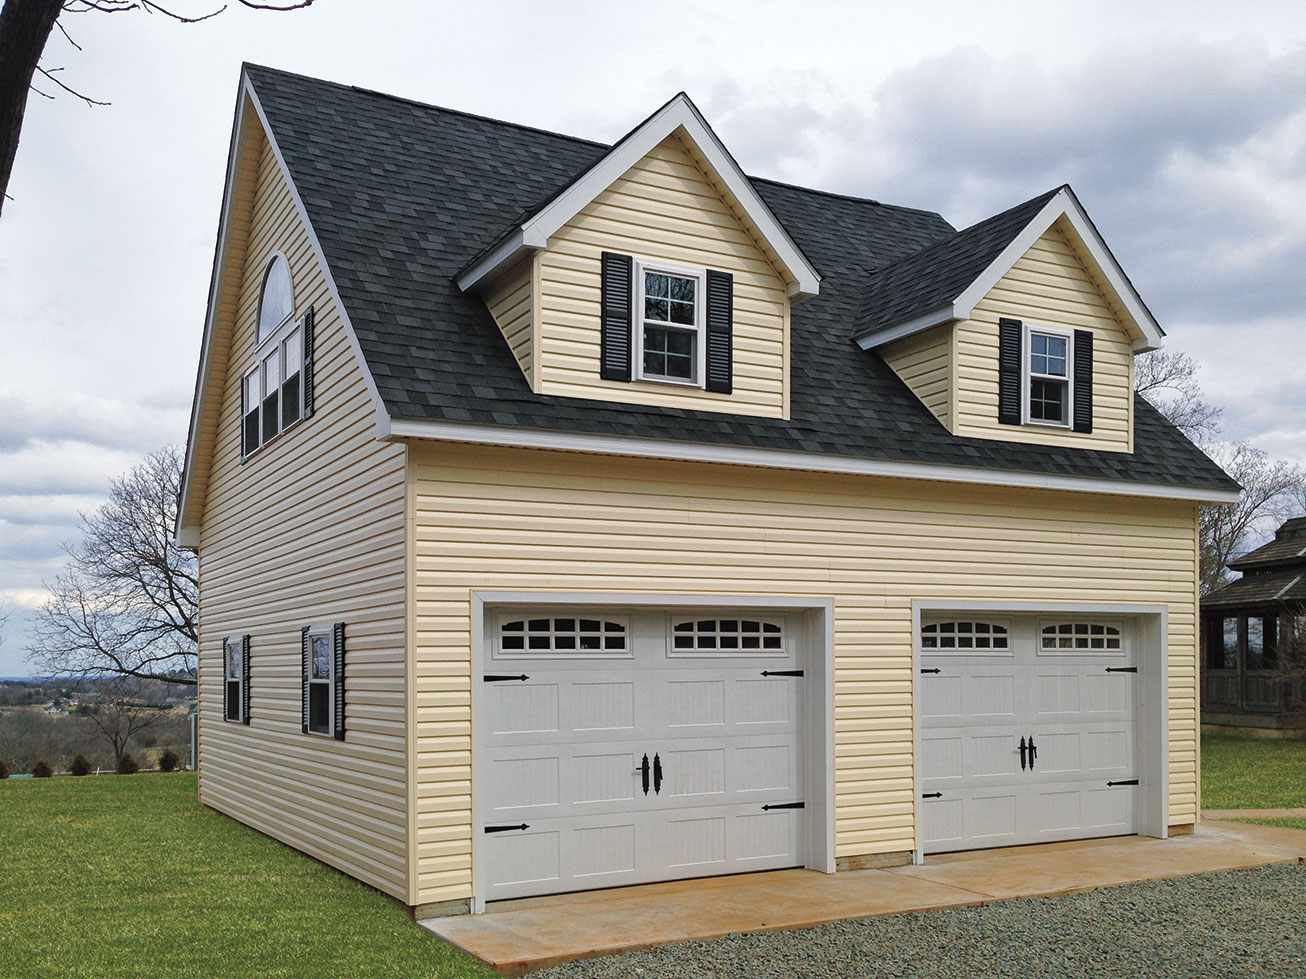 Built on site custom amish garages in oneonta ny amish for Two story two car garage